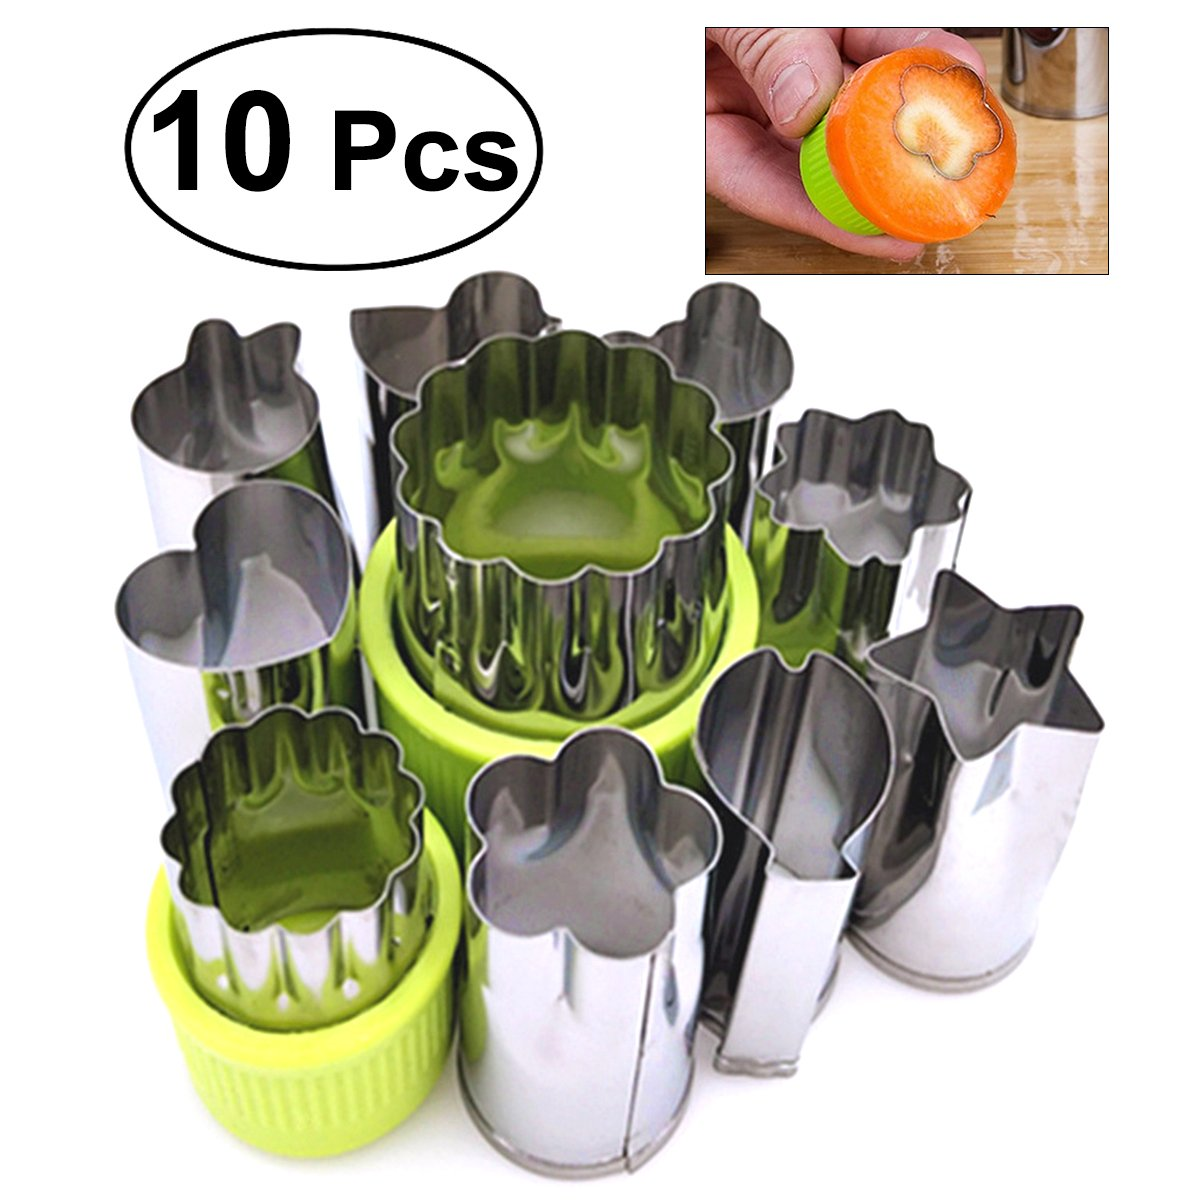 OUNONA 10Pcs Vegetable Cutter Shapes Set Stainless Steel Cutting Molds Fruits Cookie Cutter for Fun Food